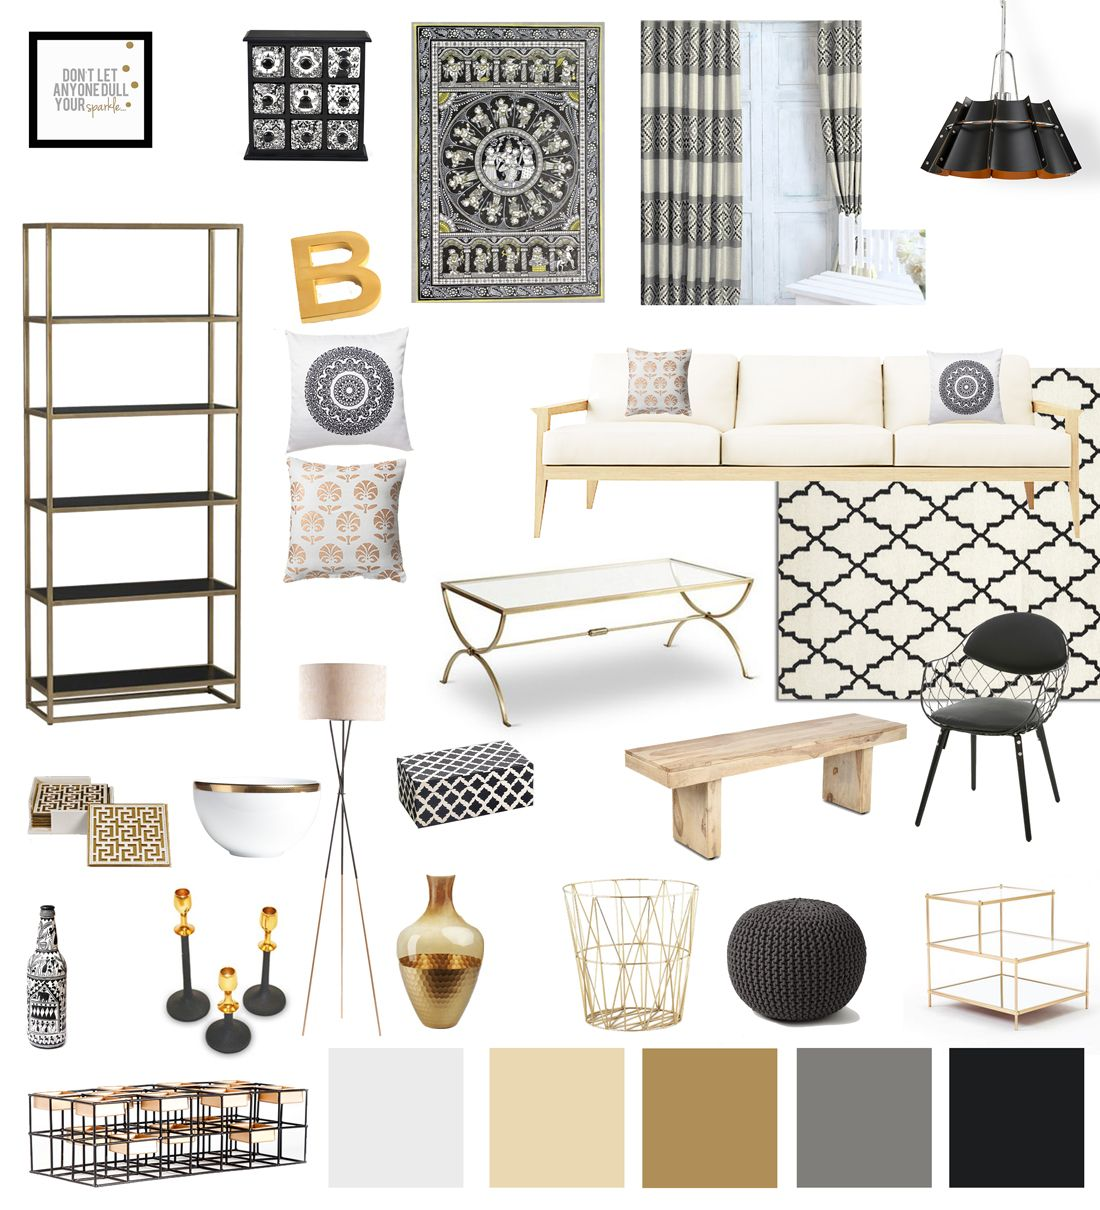 Black And White And Gold Living Room white gold and black decor living room (living room decor) (black